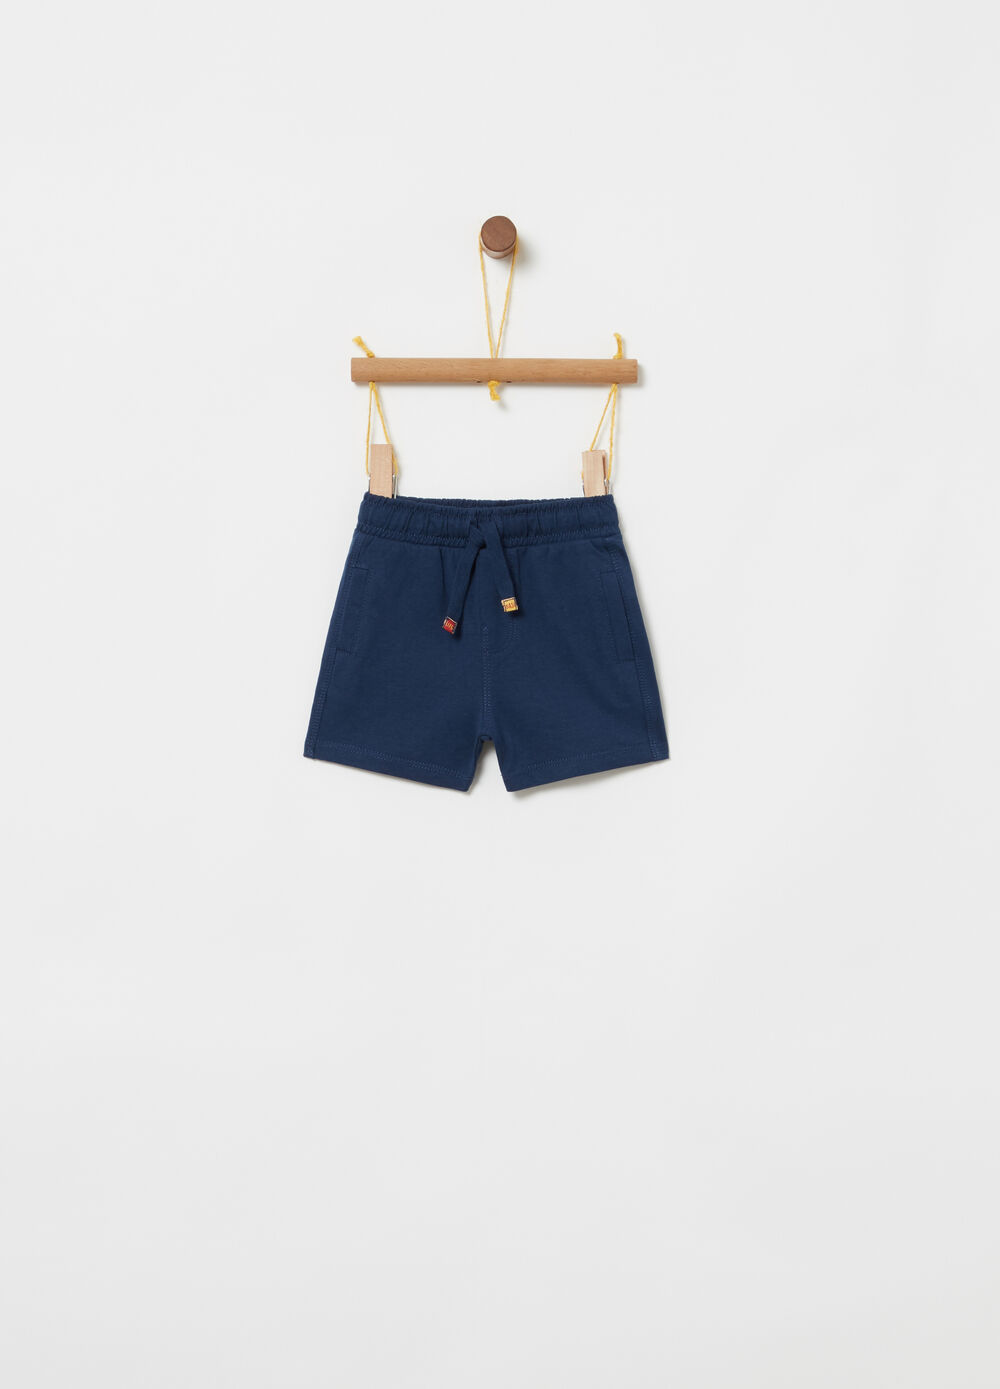 100% cotton jersey shorts with drawstring